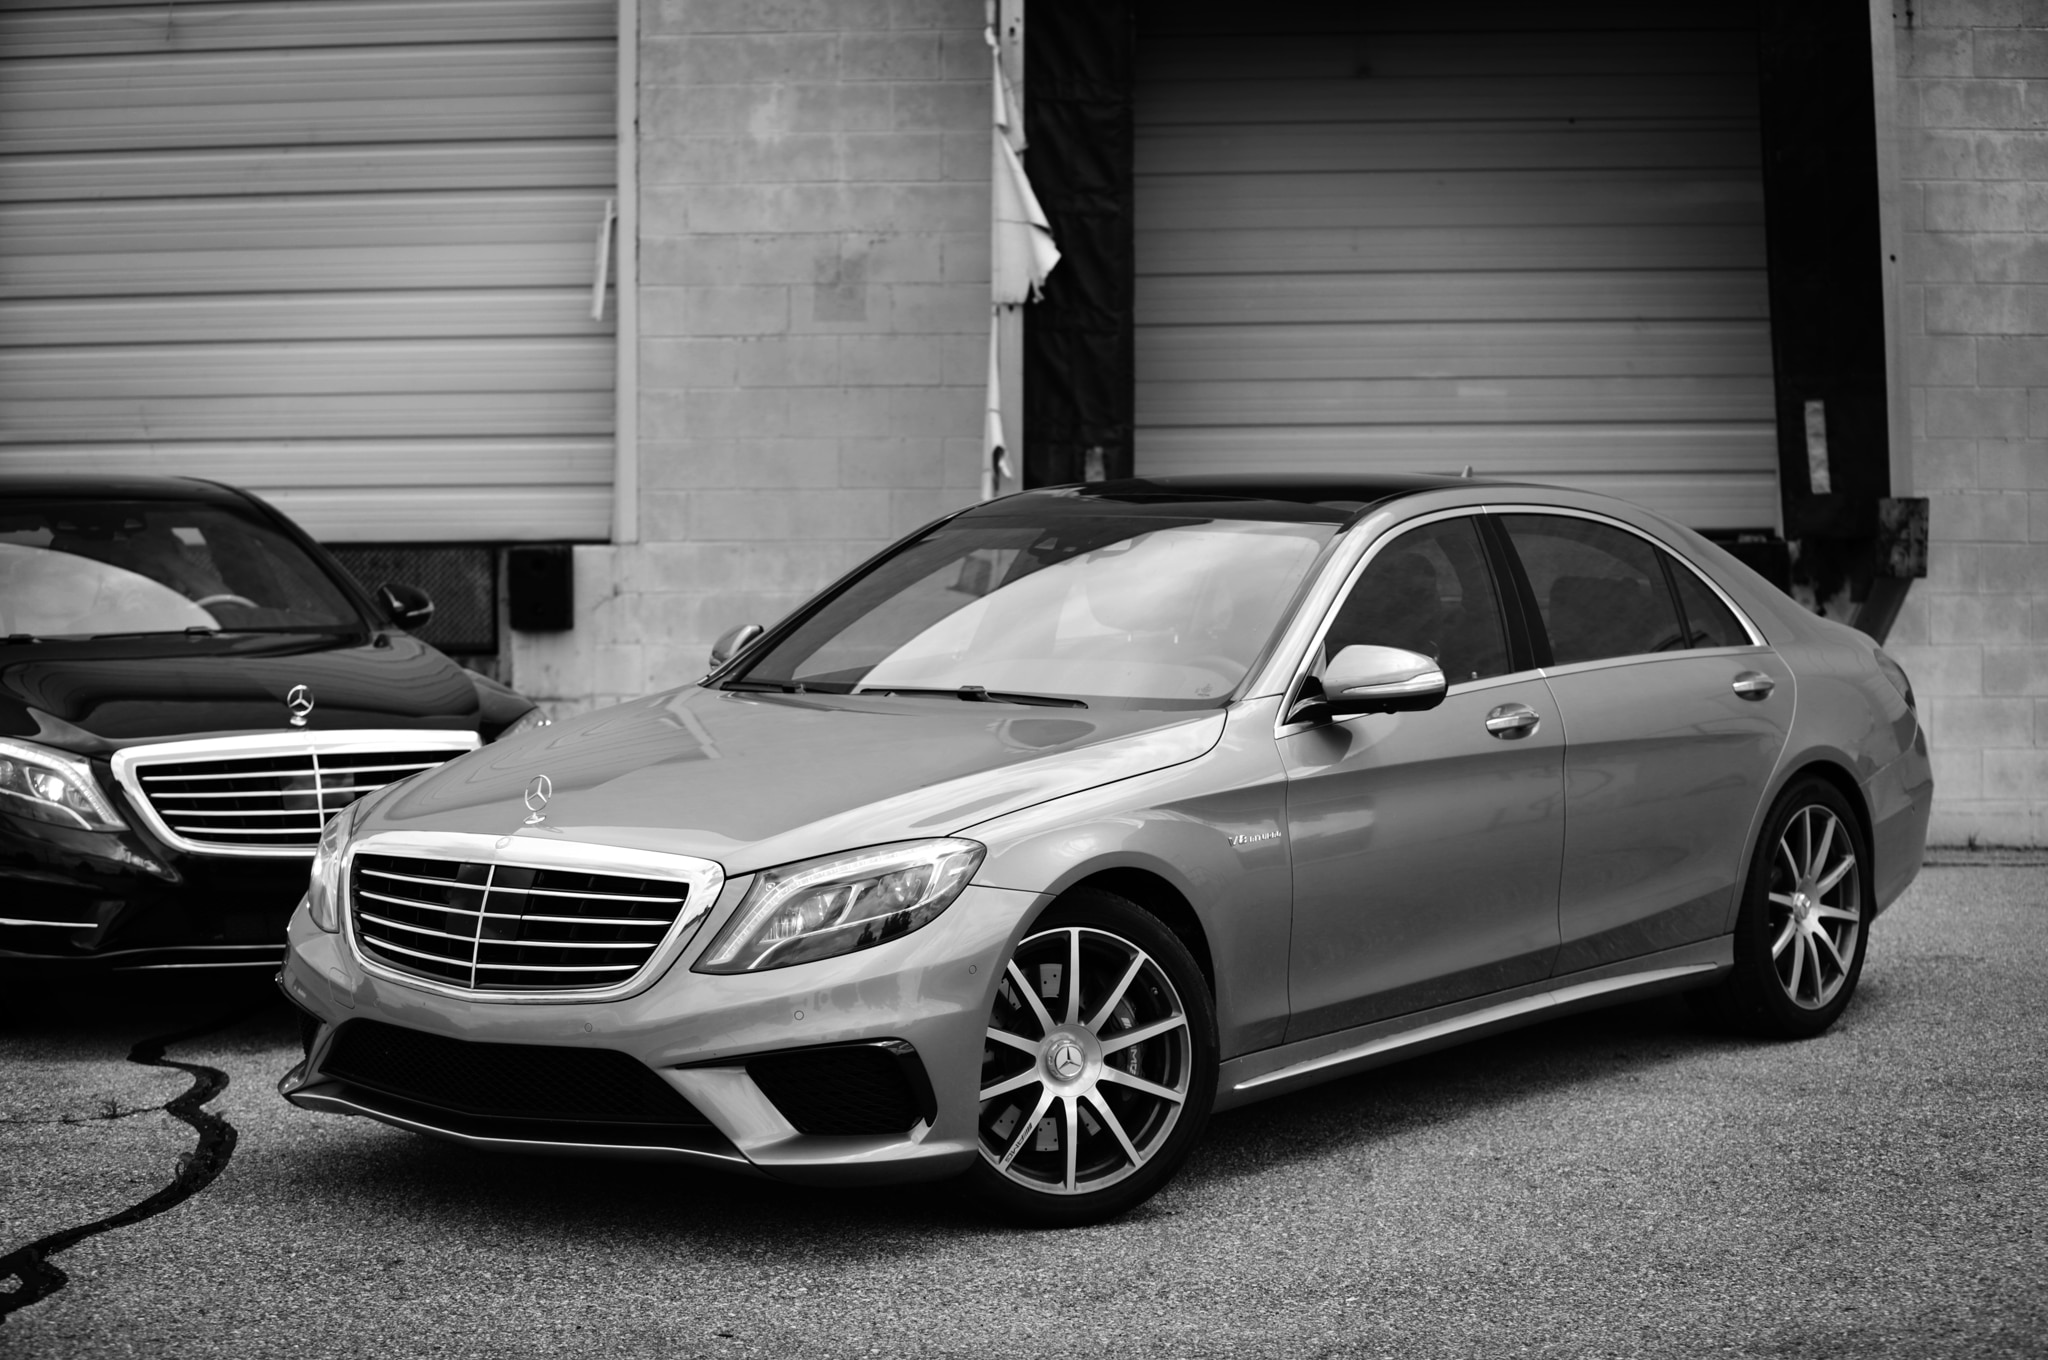 2014 Mercedes Benz S550 And S63 Amg Around The Block Clk550 Fuse Box Never Left Wanting